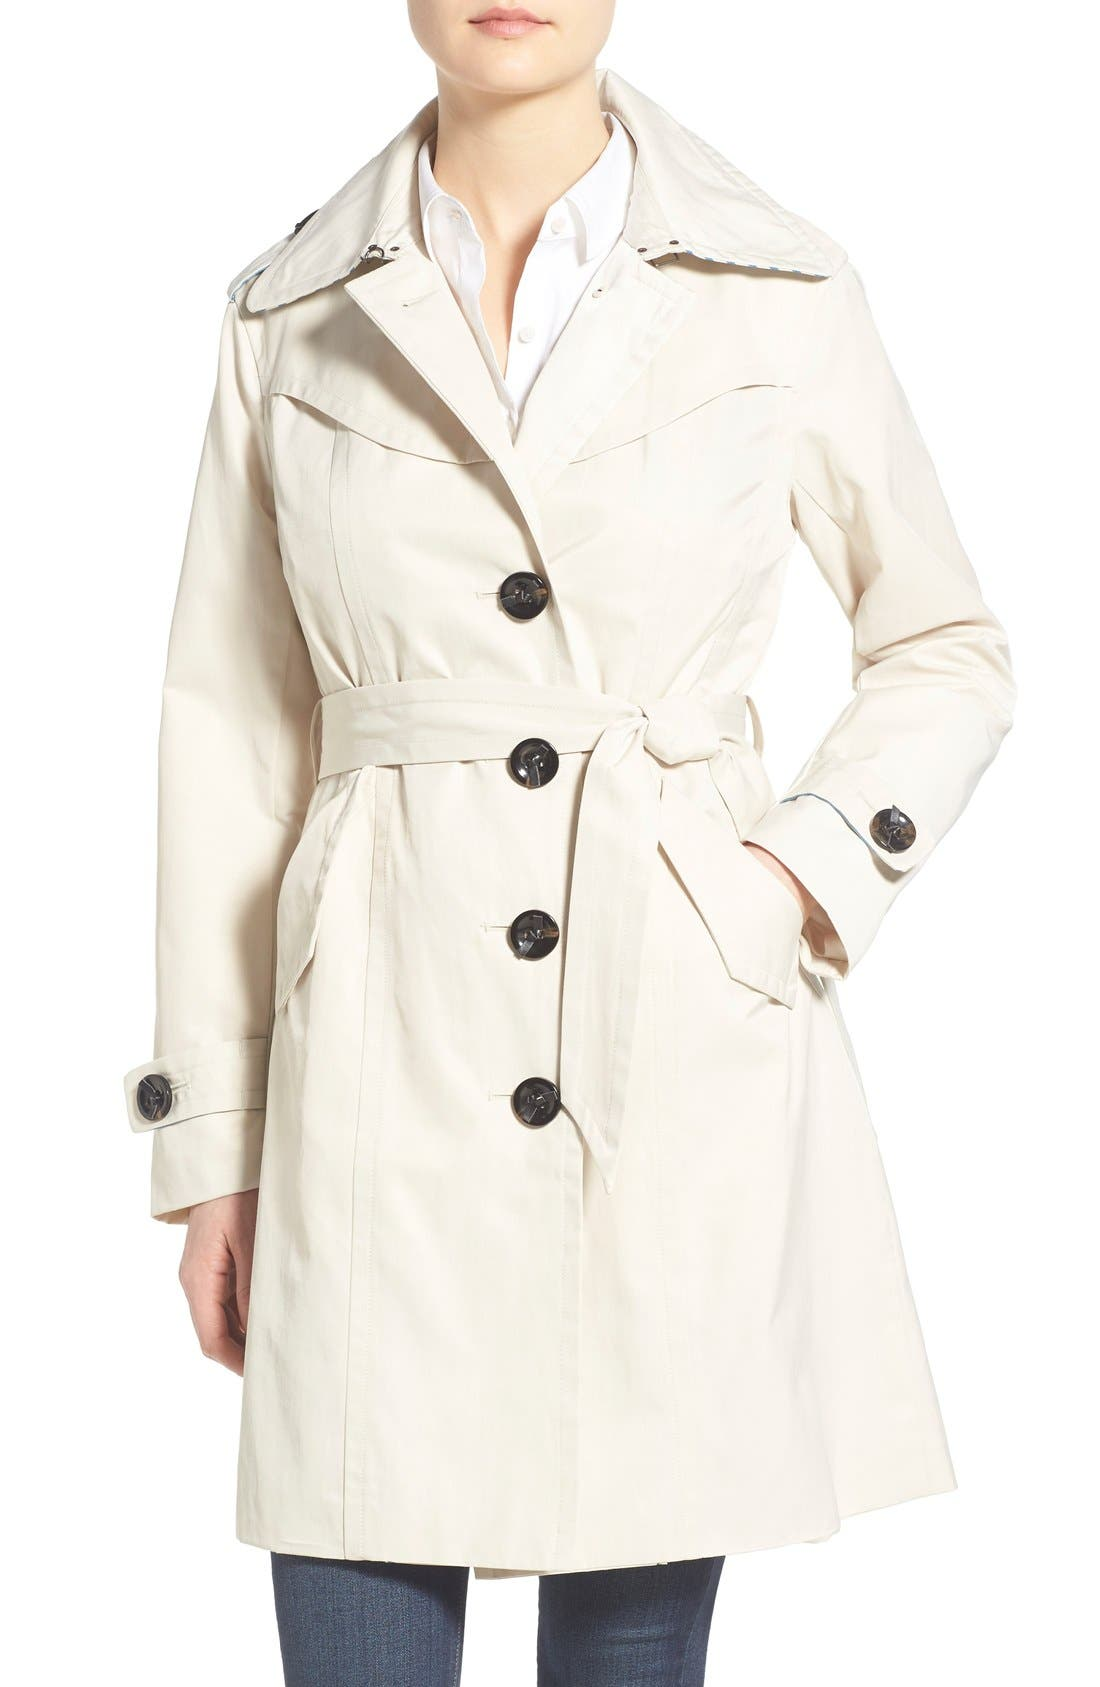 Alternate Image 1 Selected - Nanette Lepore Twill Trench Coat